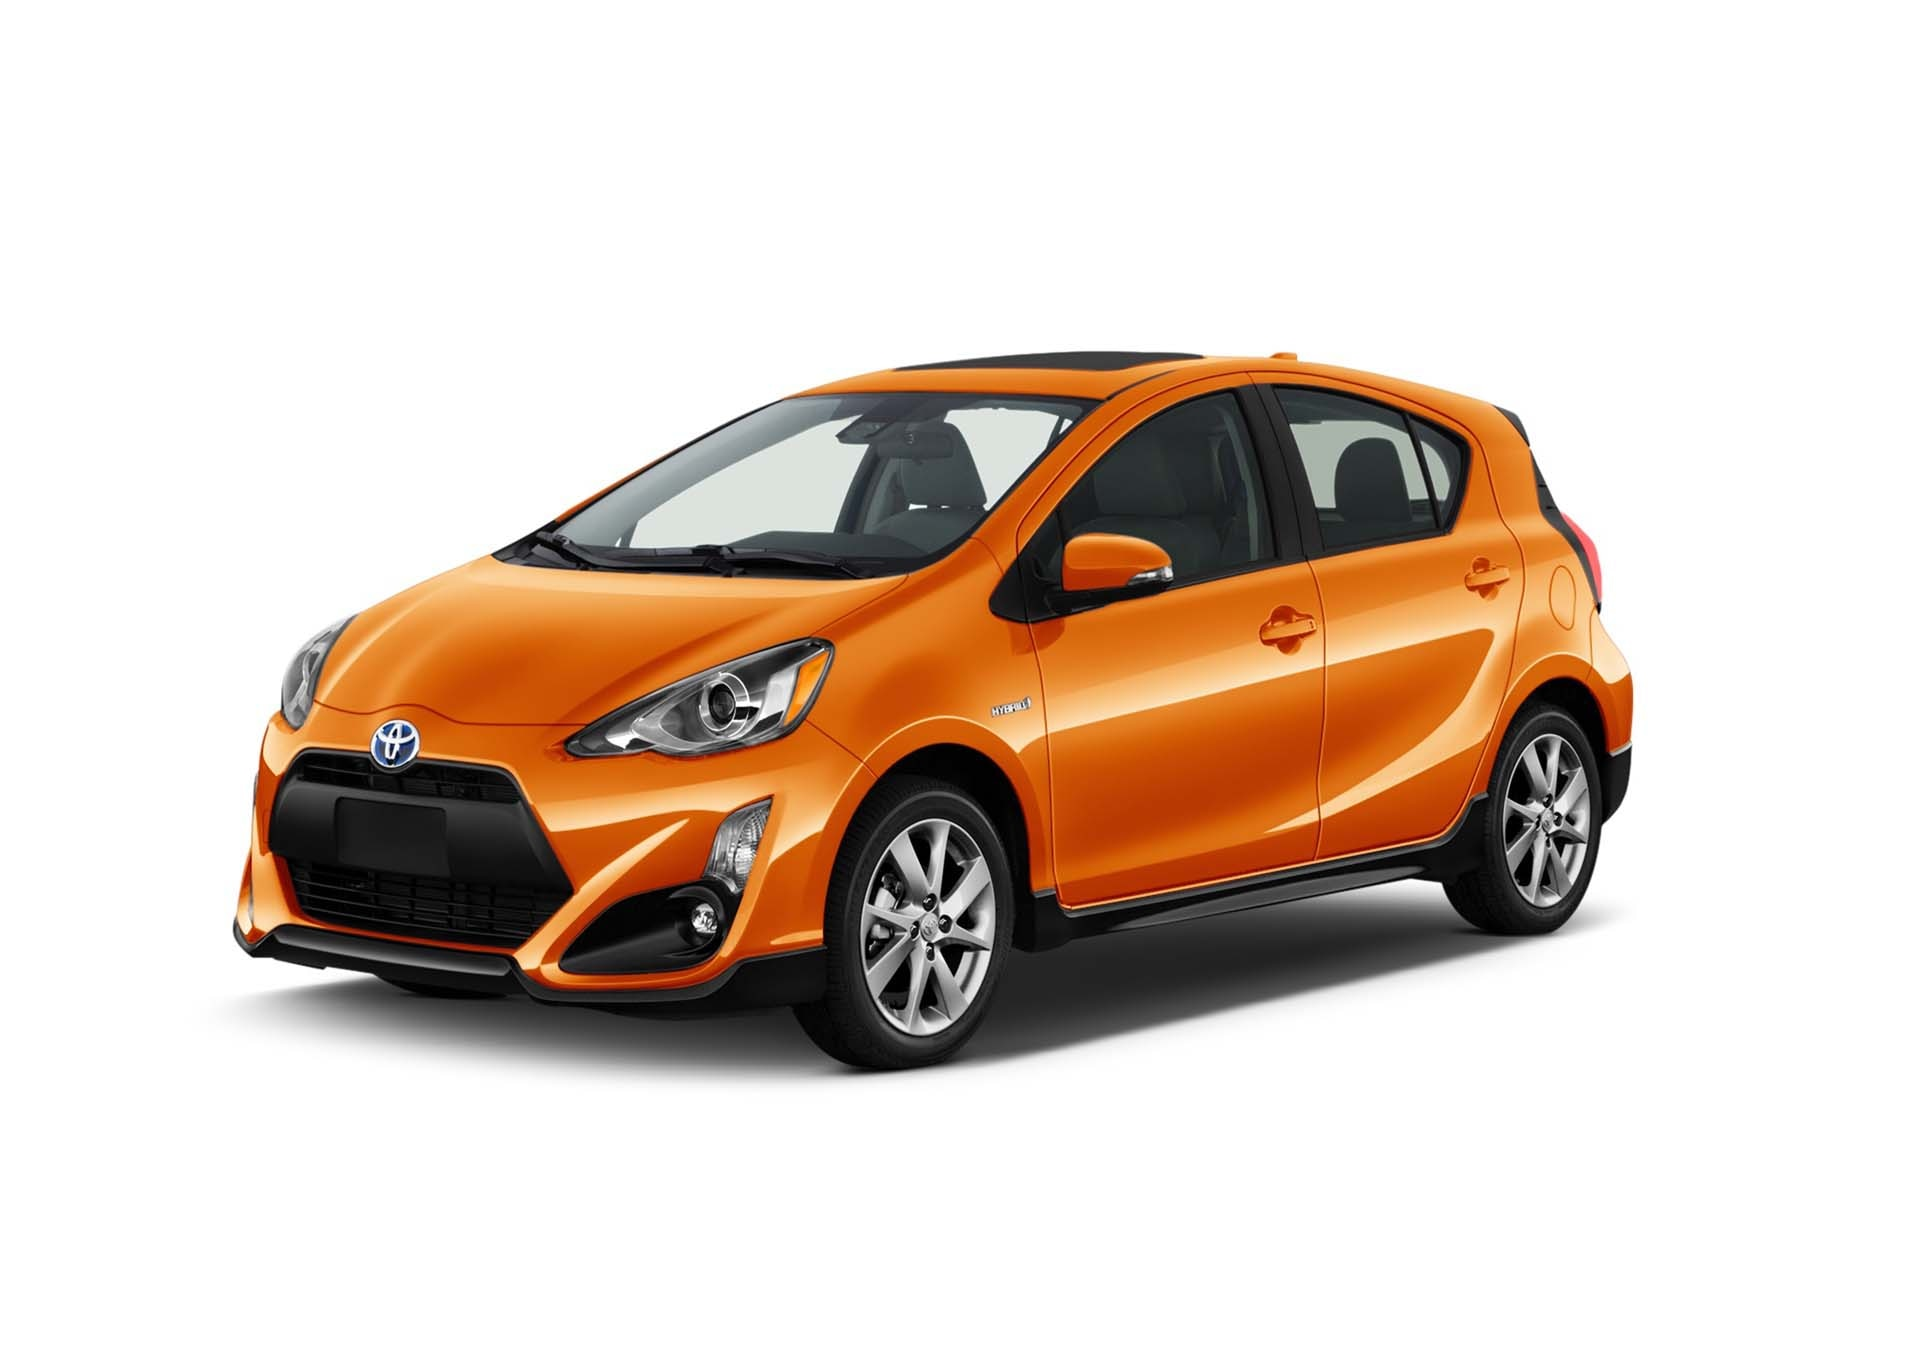 2017 Toyota Prius C Gets Refreshed